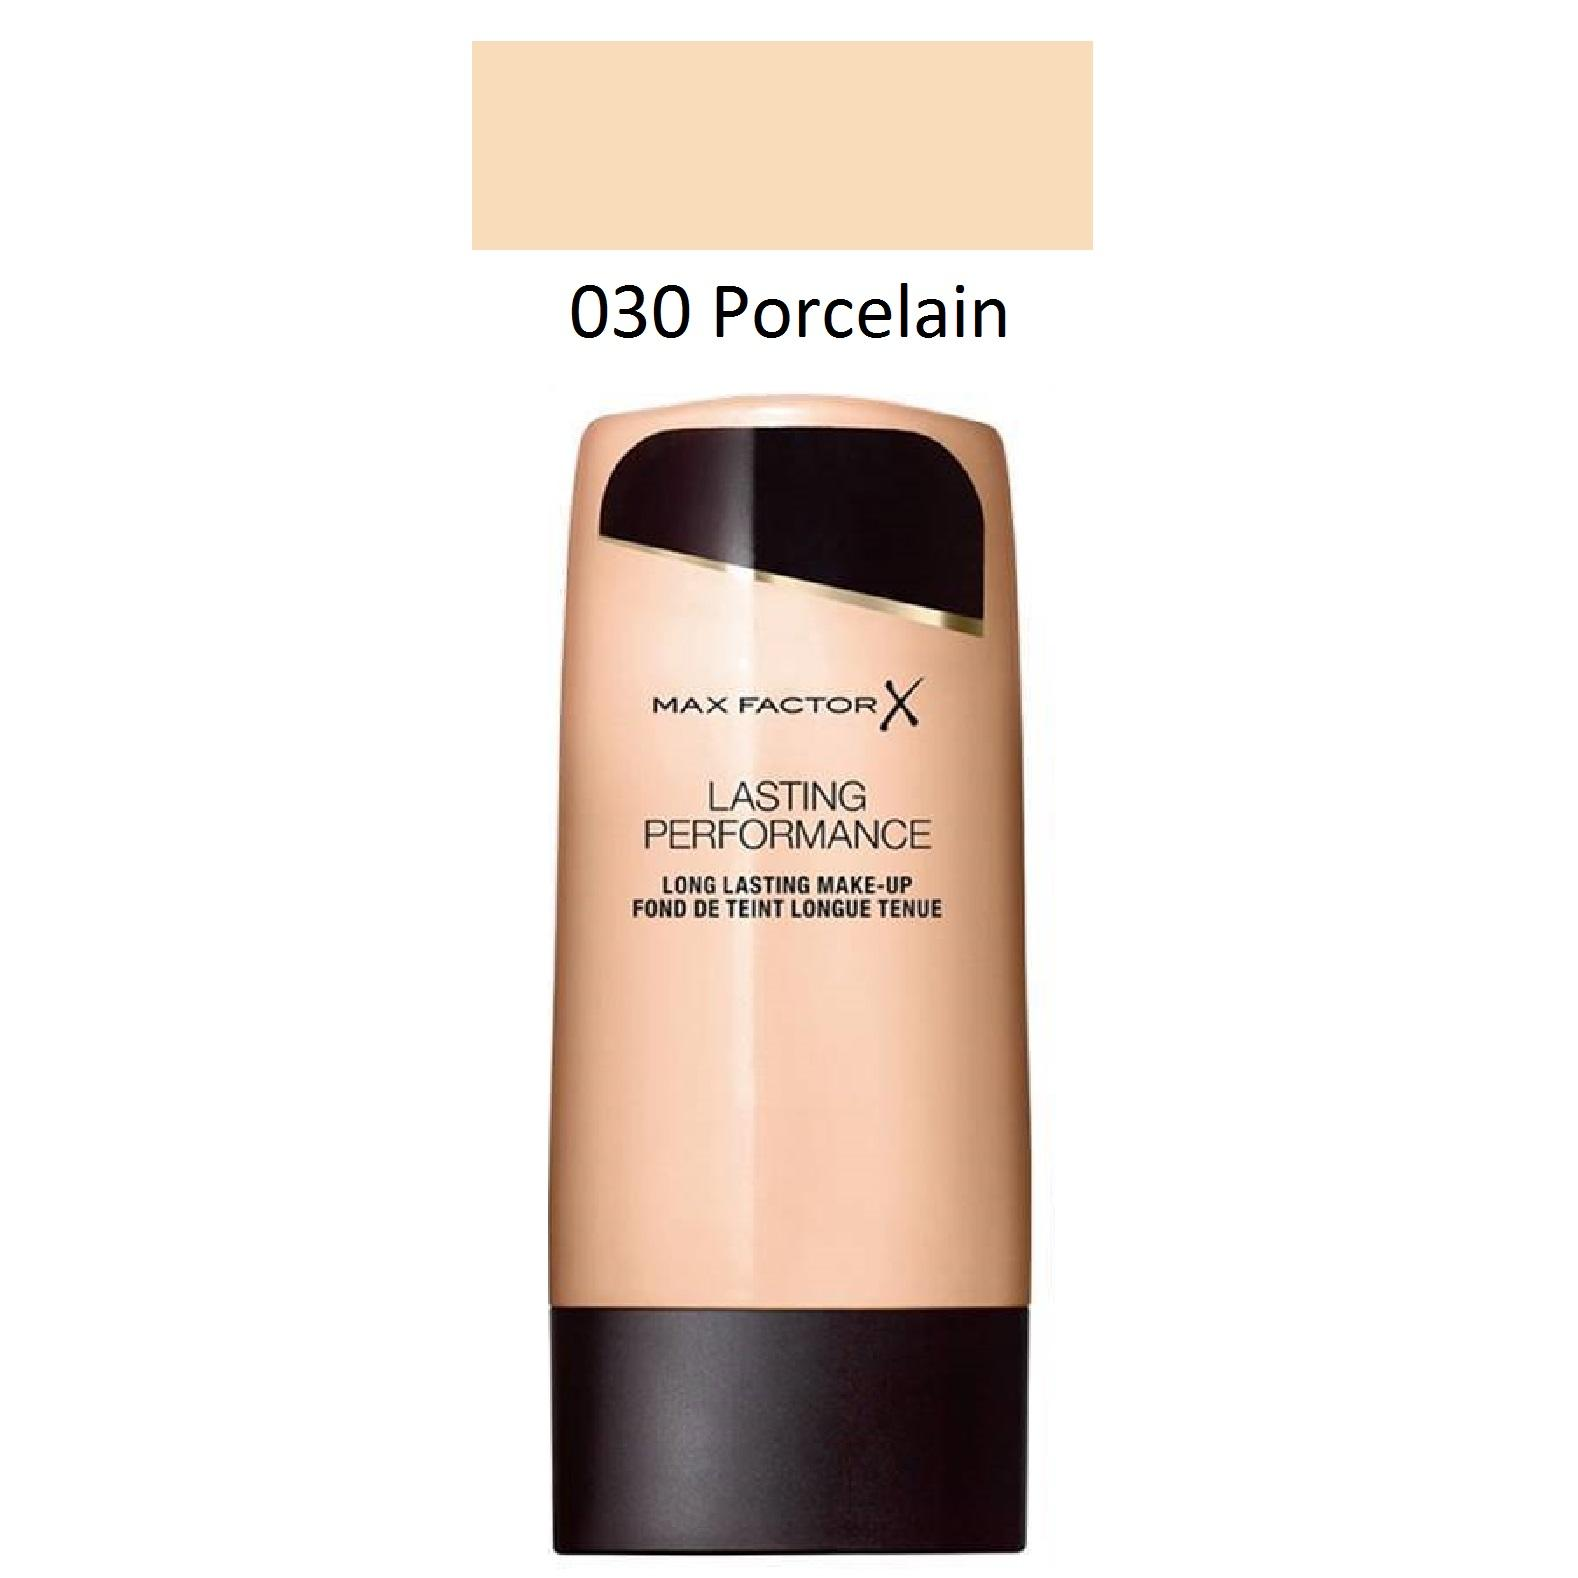 Max Factor Lasting Performance Foundation 030 Porcelain